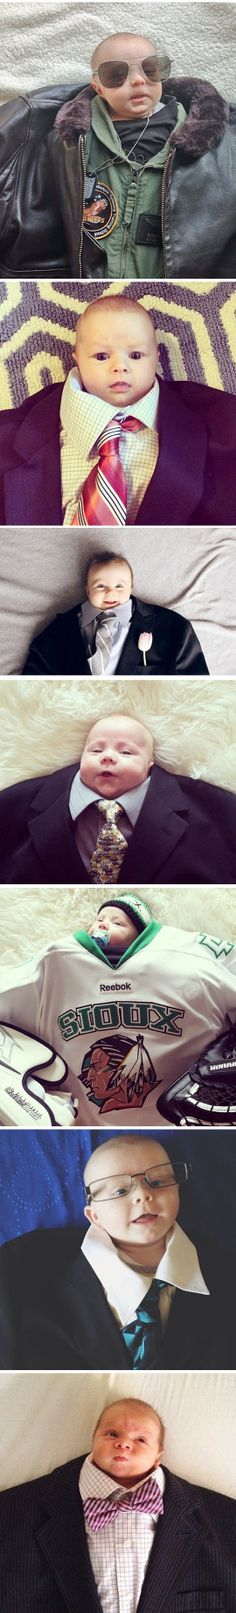 Elegance Suits Them  // funny pictures - funny photos - funny images - funny pics - funny quotes - #lol #humor #funnypictures